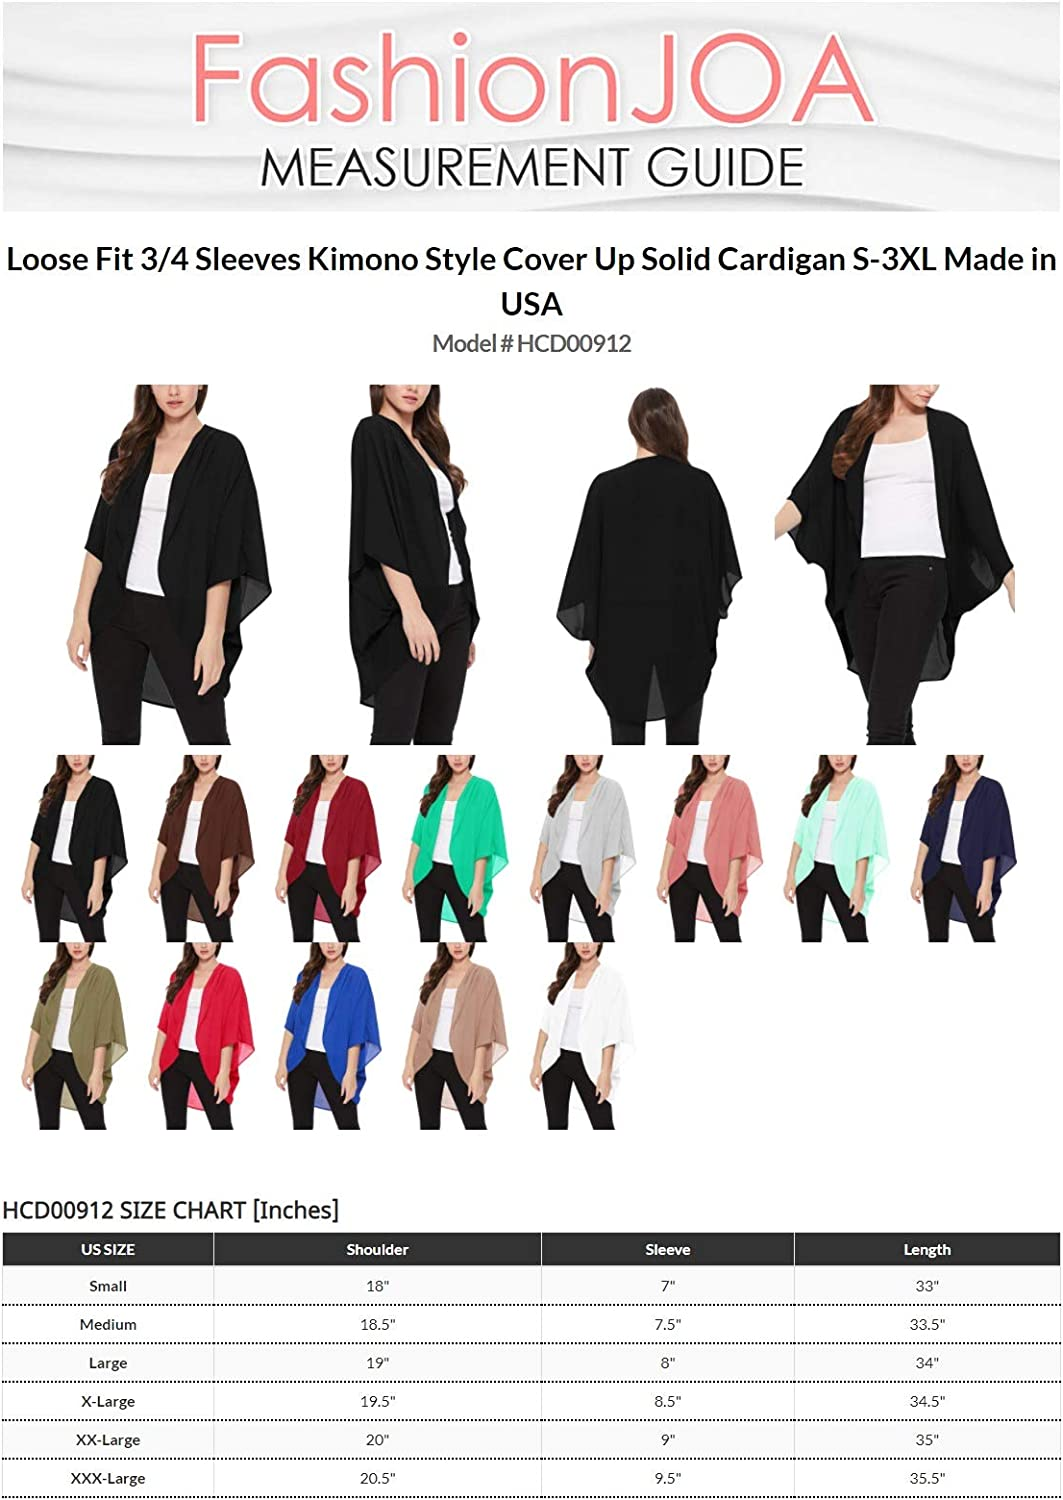 Women's Loose Fit 3/4 Sleeves Kimono Style Cover Up Solid Cardigan S-3XL Made in USA